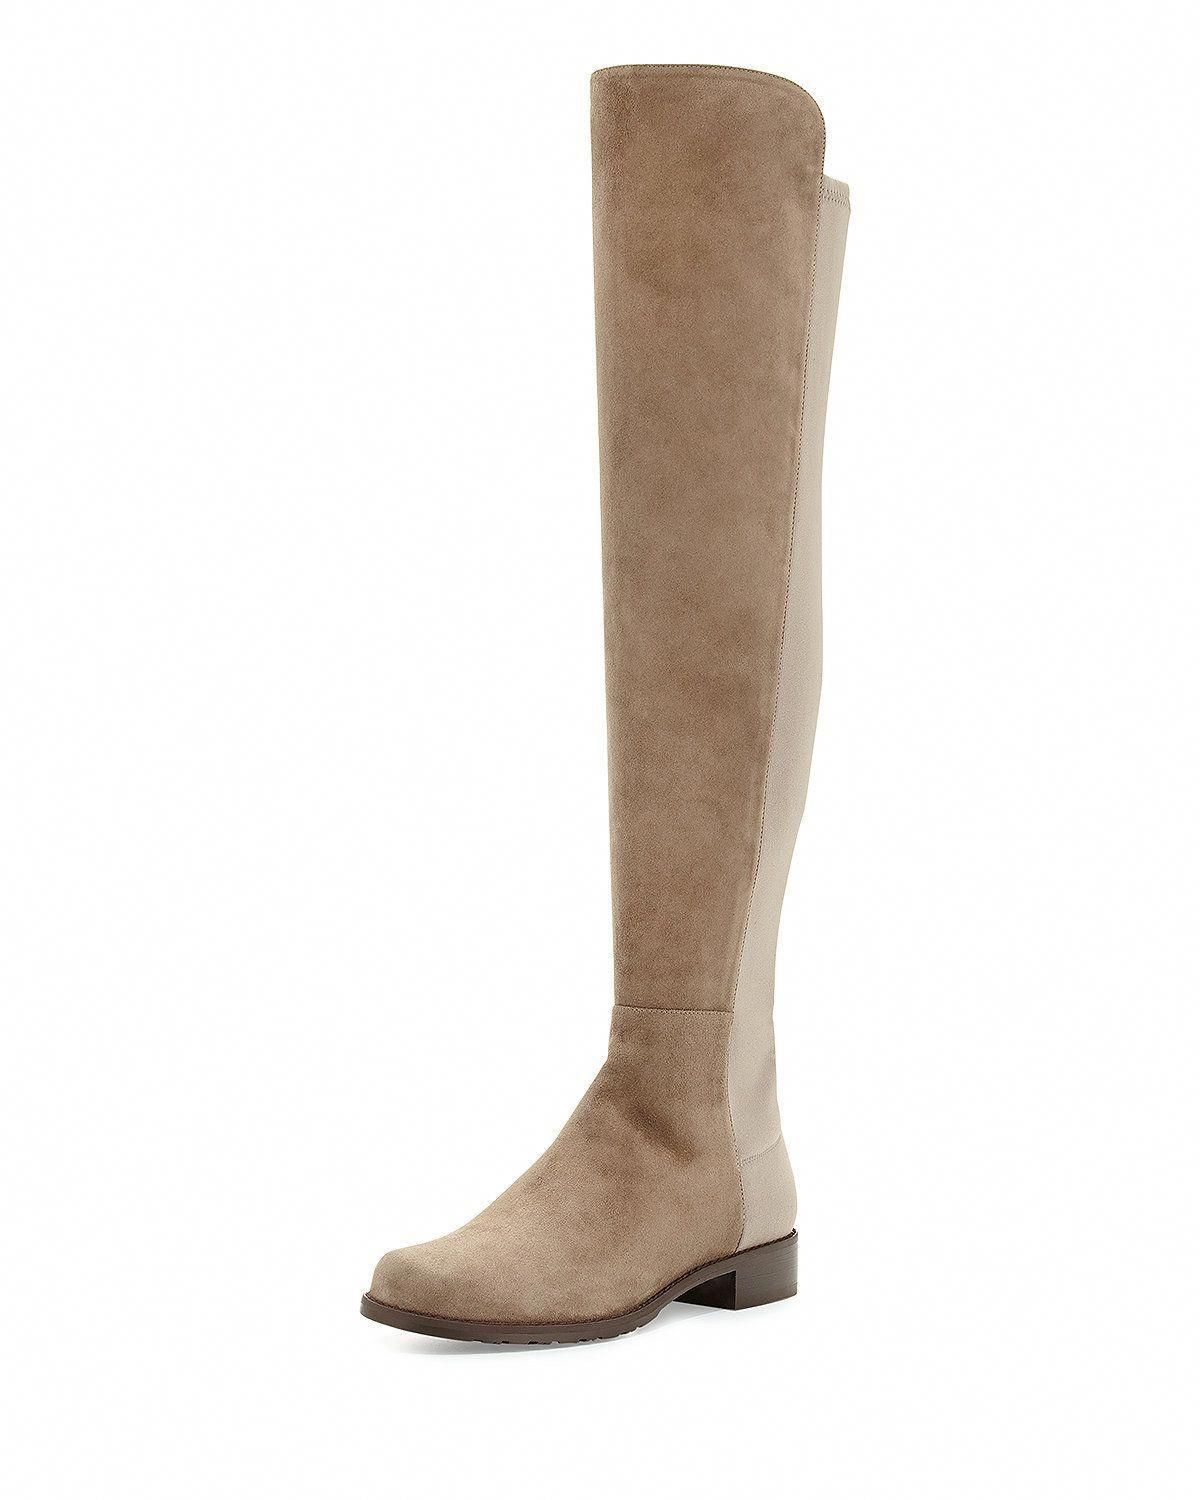 042846e03a1 Stuart Weitzman Build Your Own 5050 or Reserve Over-the-Knee Boot   StuartWeitzman